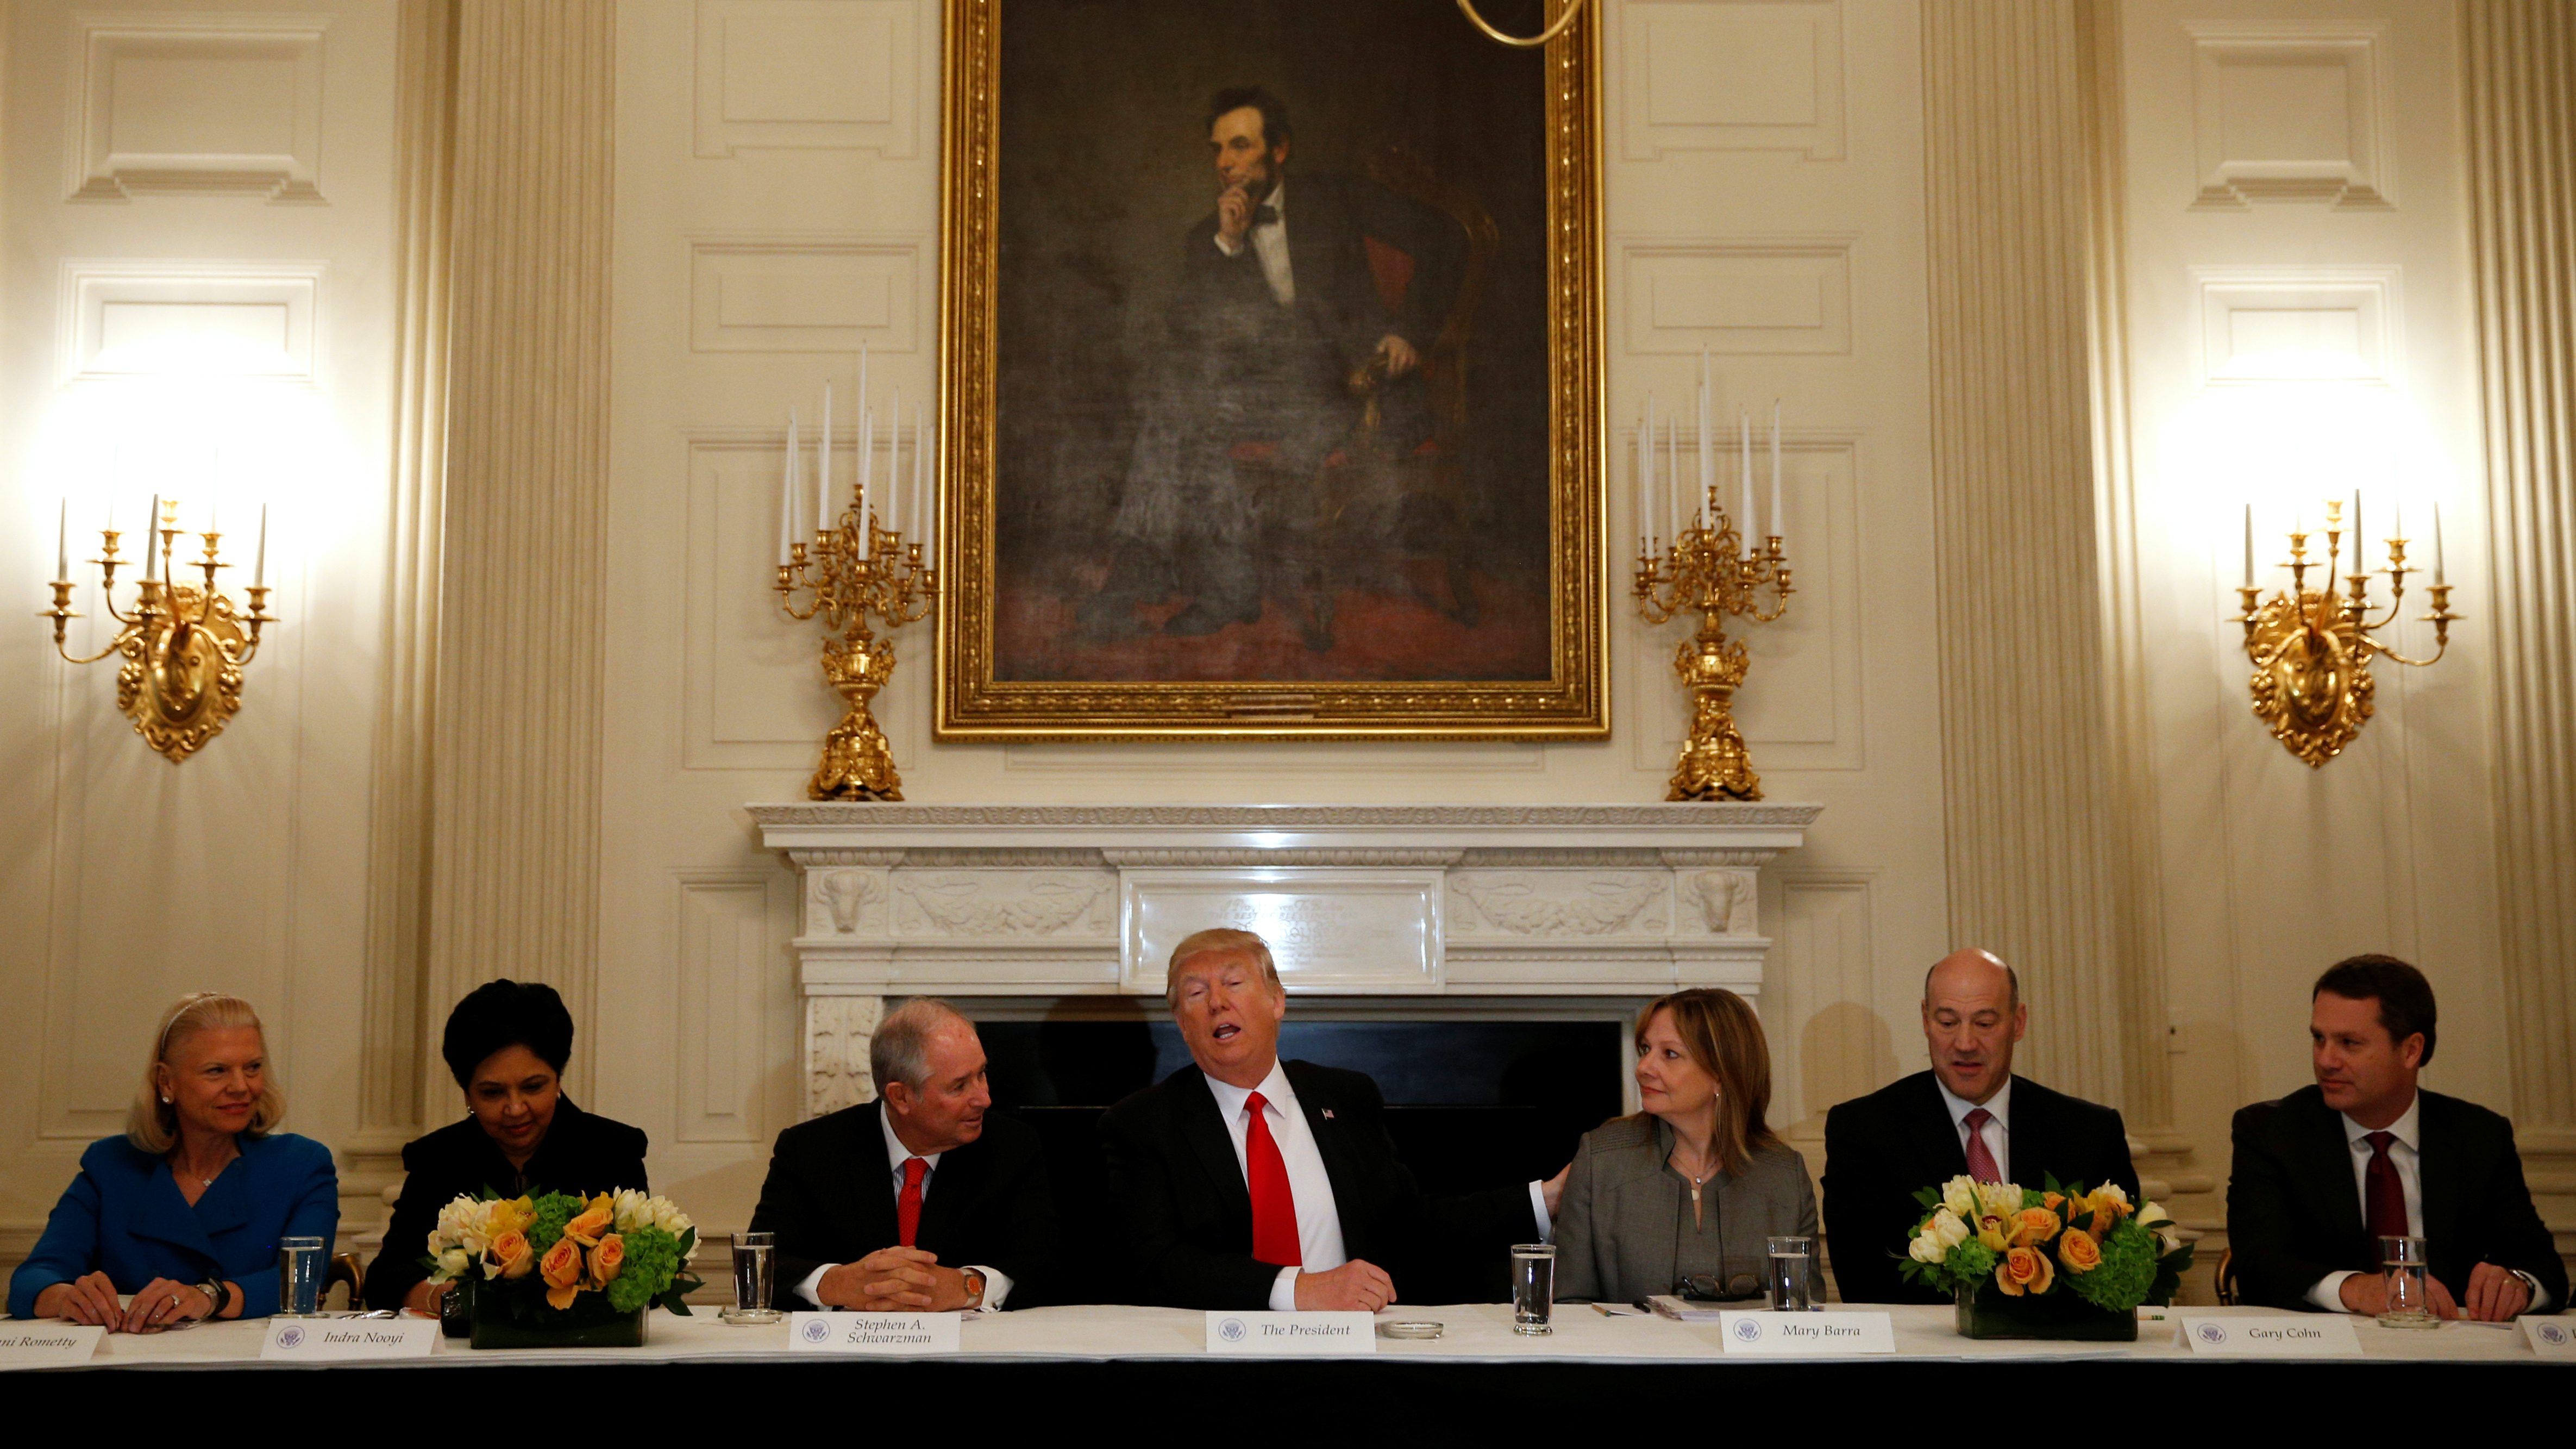 U.S. President Donald Trump puts his hand on General Motors CEO Mary Barra while hosting a strategy and policy forum with chief executives of major U.S. companies at the White House in Washington, U.S. February 3, 2017. From L-R are IBM CEO Ginni Rometty, Pepsico CEO Indra Nooyi, Blackstone CEO Stephen Schwarzman, U.S. President Donald Trump, General Motors CEO Mary Barra, White House National Economic Council Director Gary Cohn and Wal-Mart CEO Doug McMillon.      TPX IMAGES OF THE DAY - RC11FFB7FB60